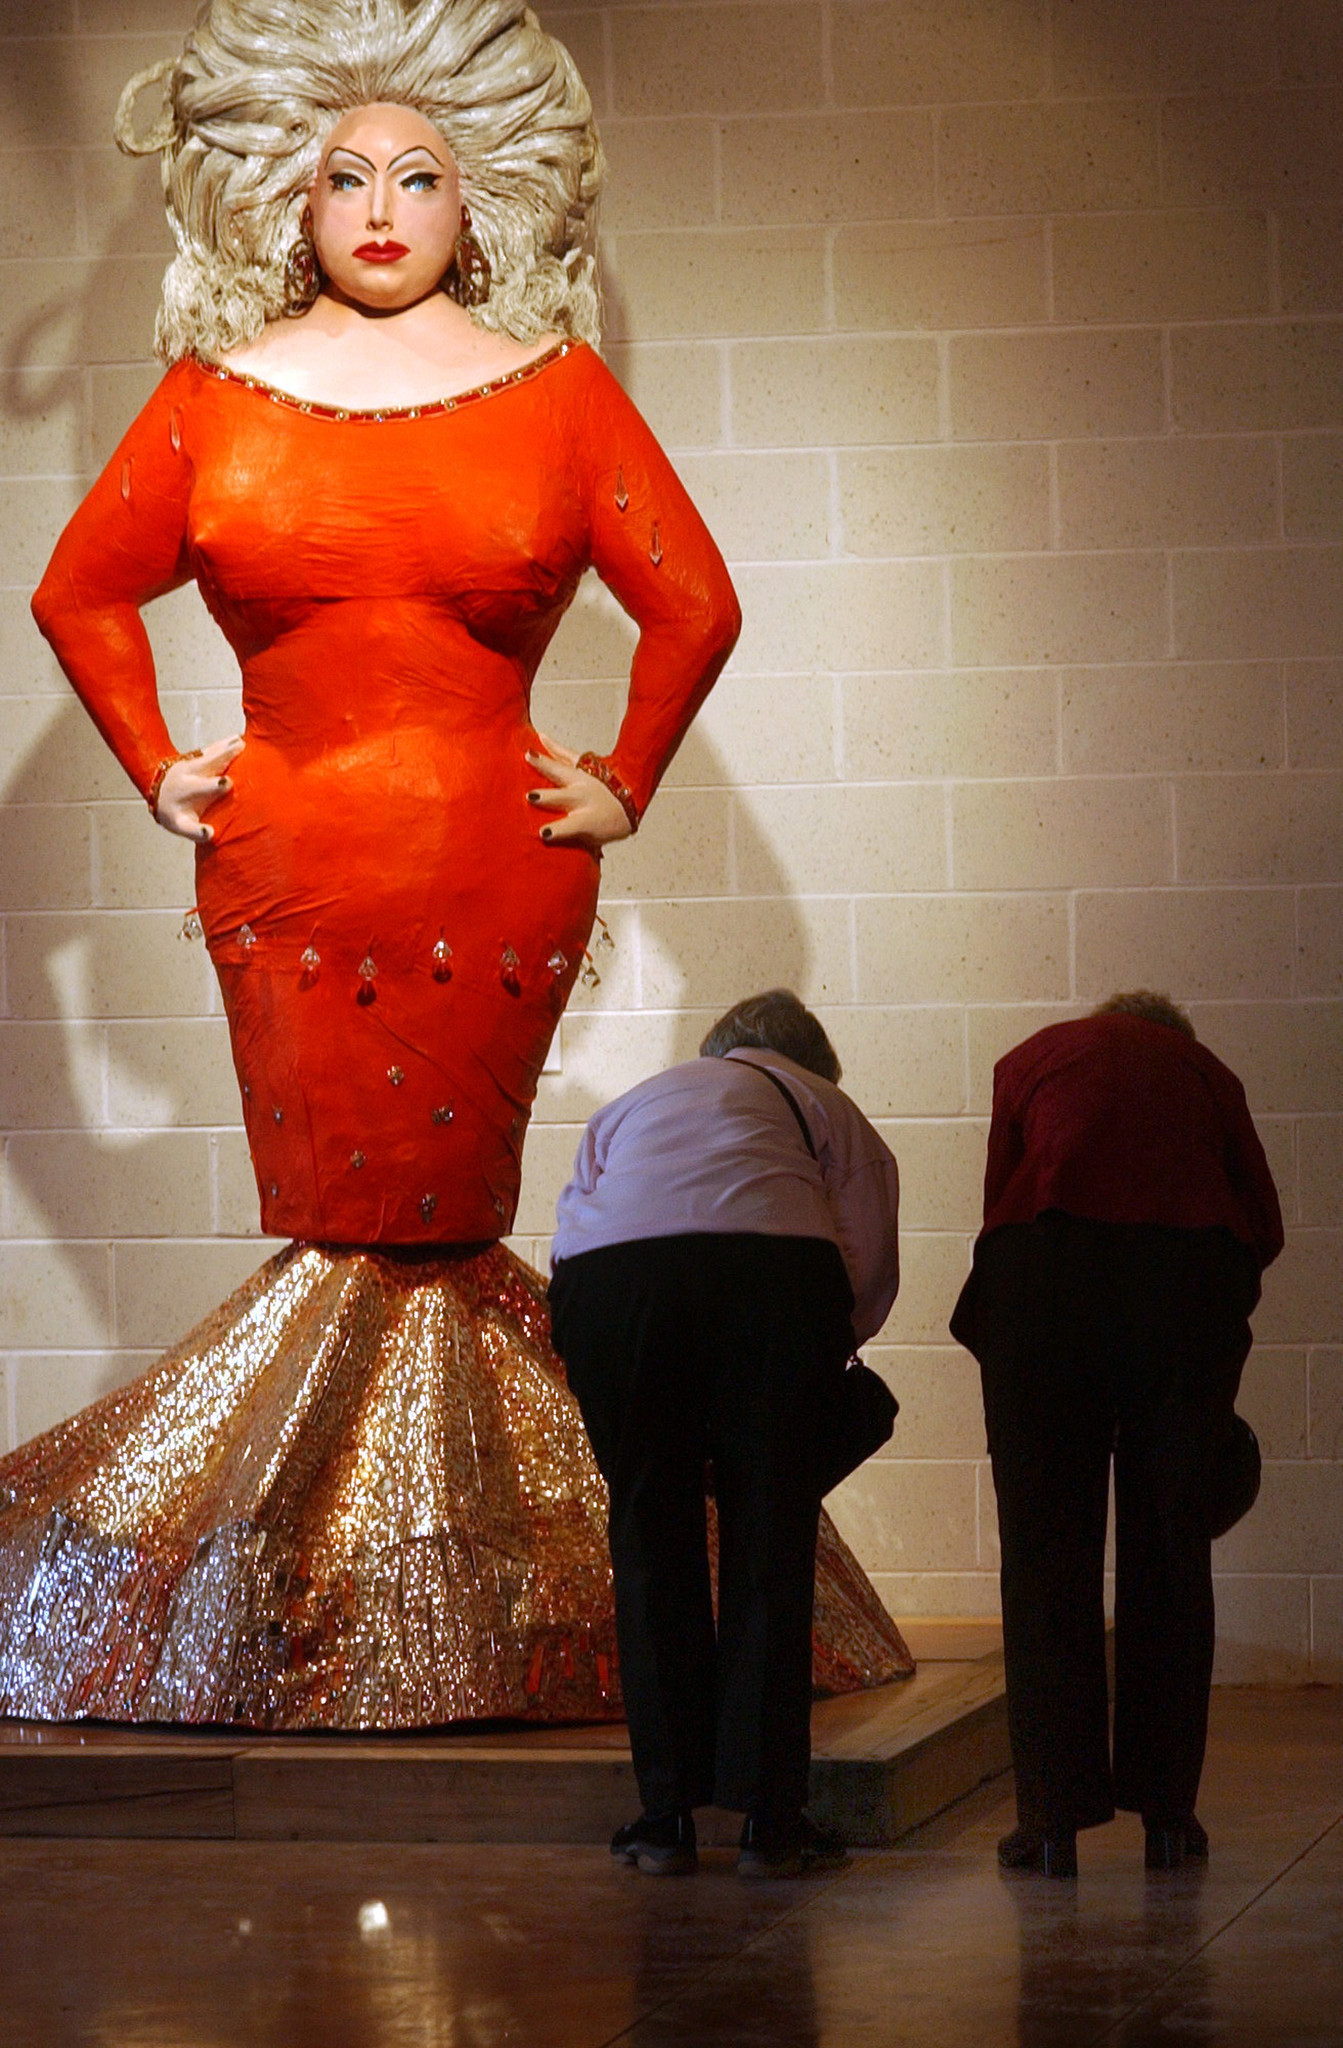 statue of divine gets a permanent home at the american visionary art